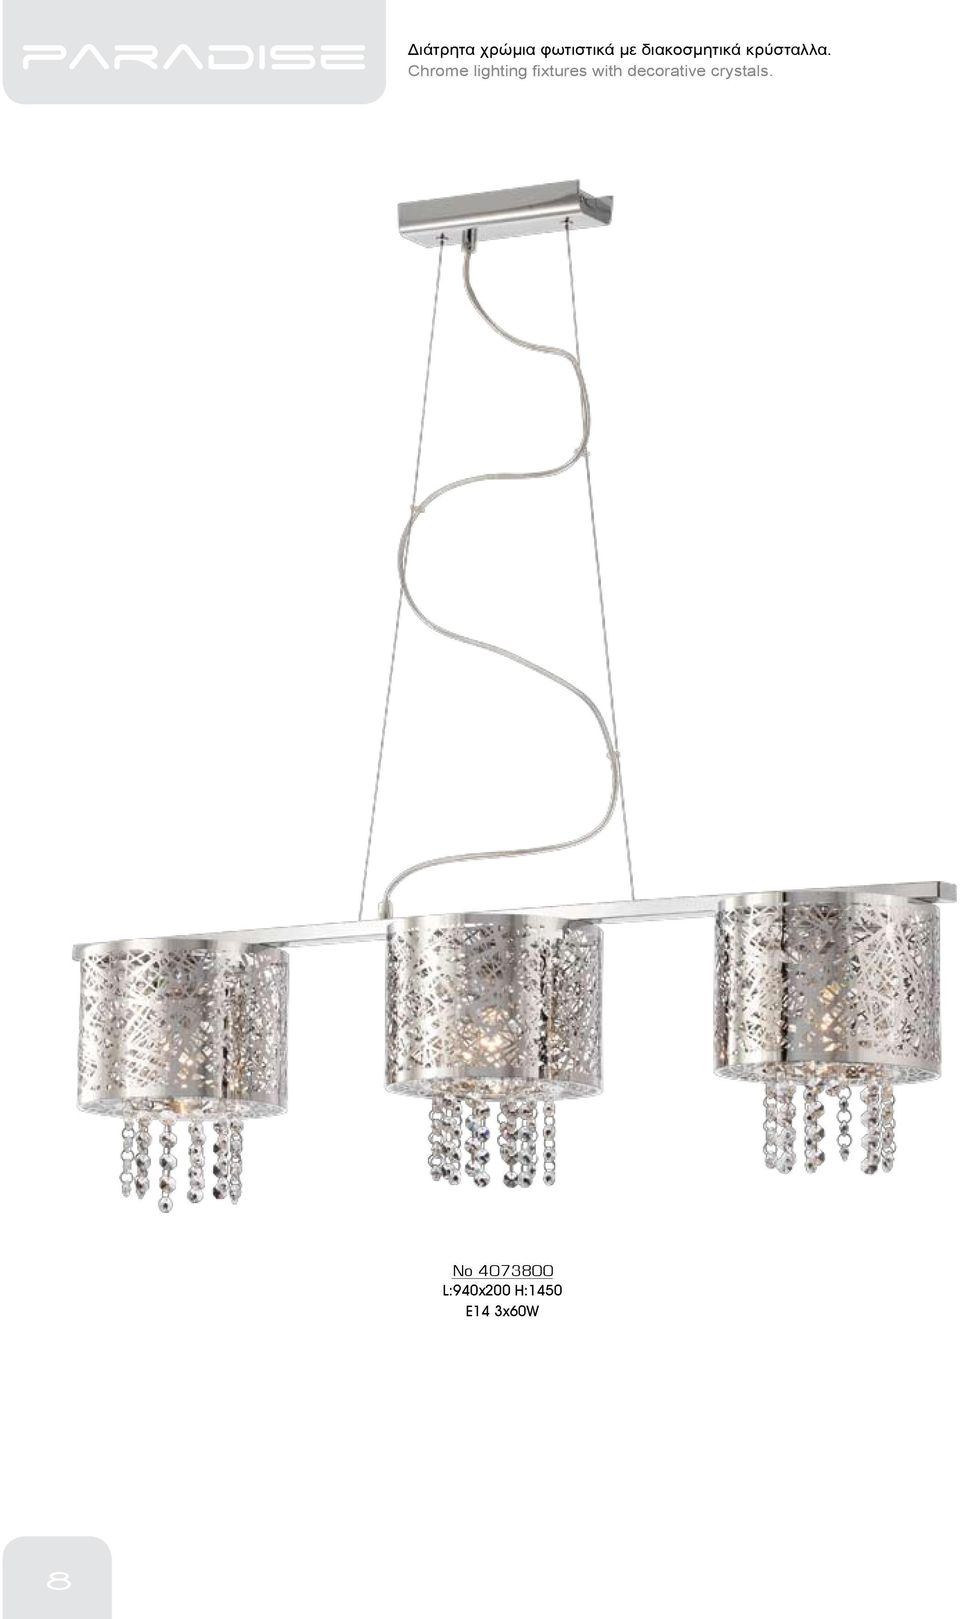 Chrome lighting fixtures with